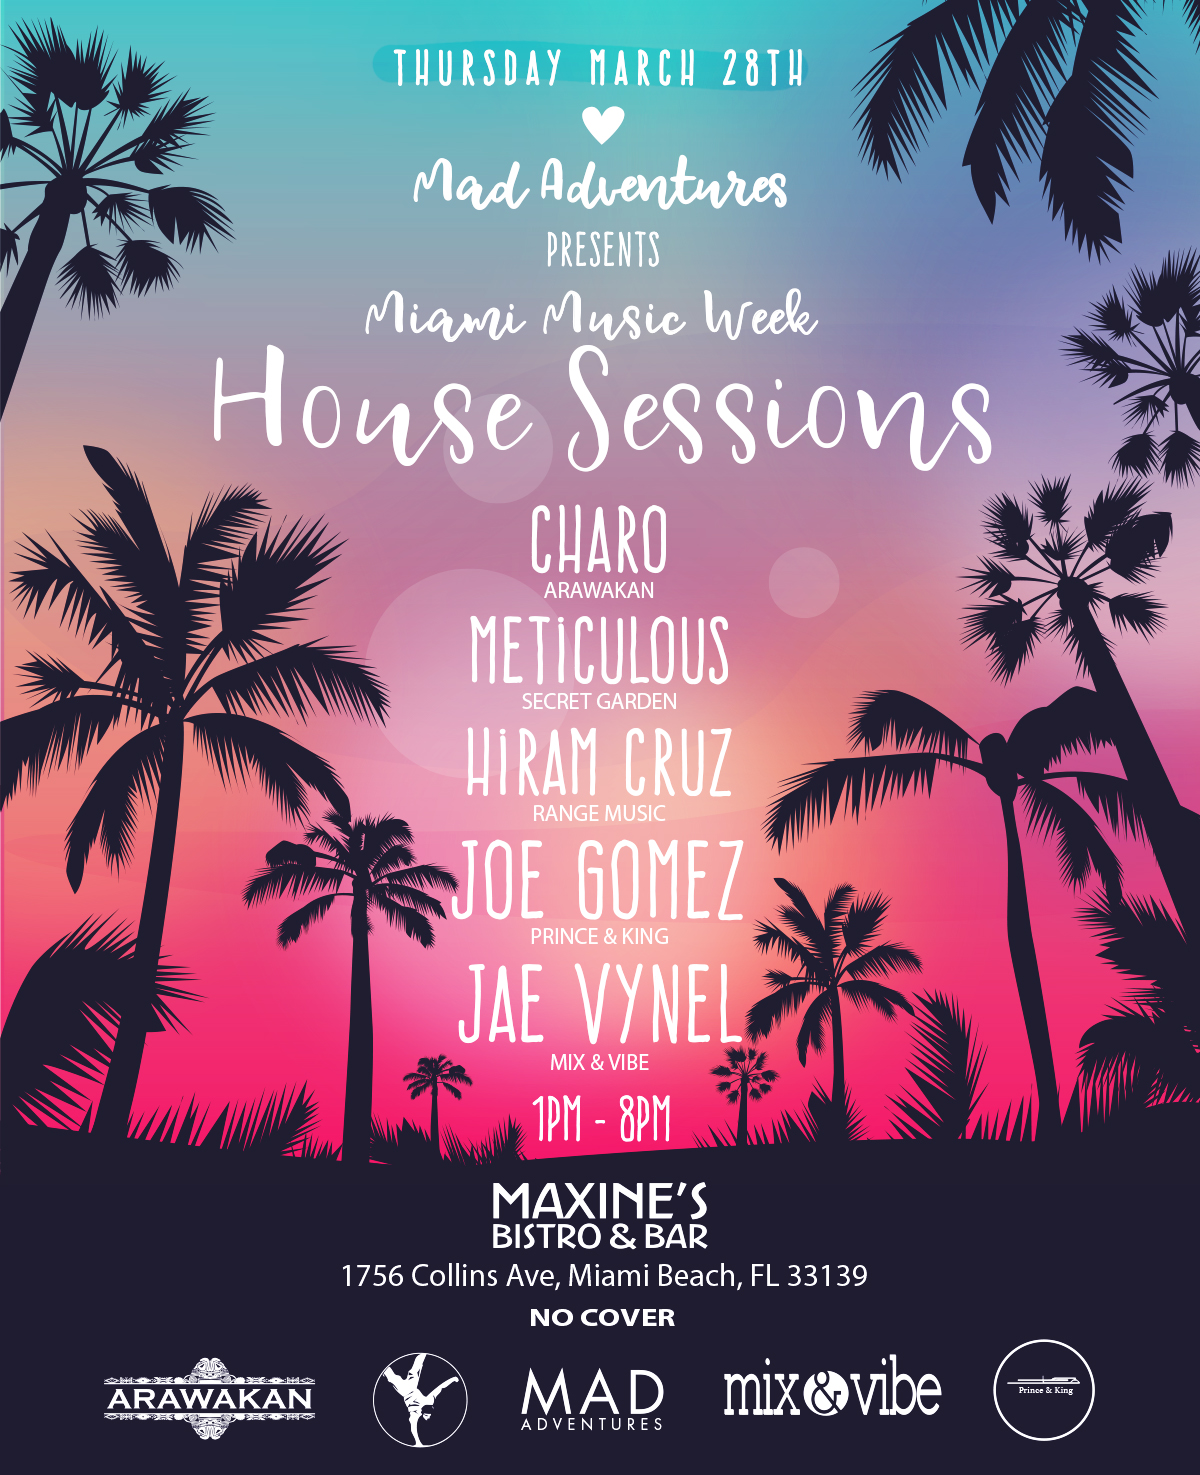 MAD Adventures presents Miami Music Week House Sessions @ Maxine's Bistro & Bar Image